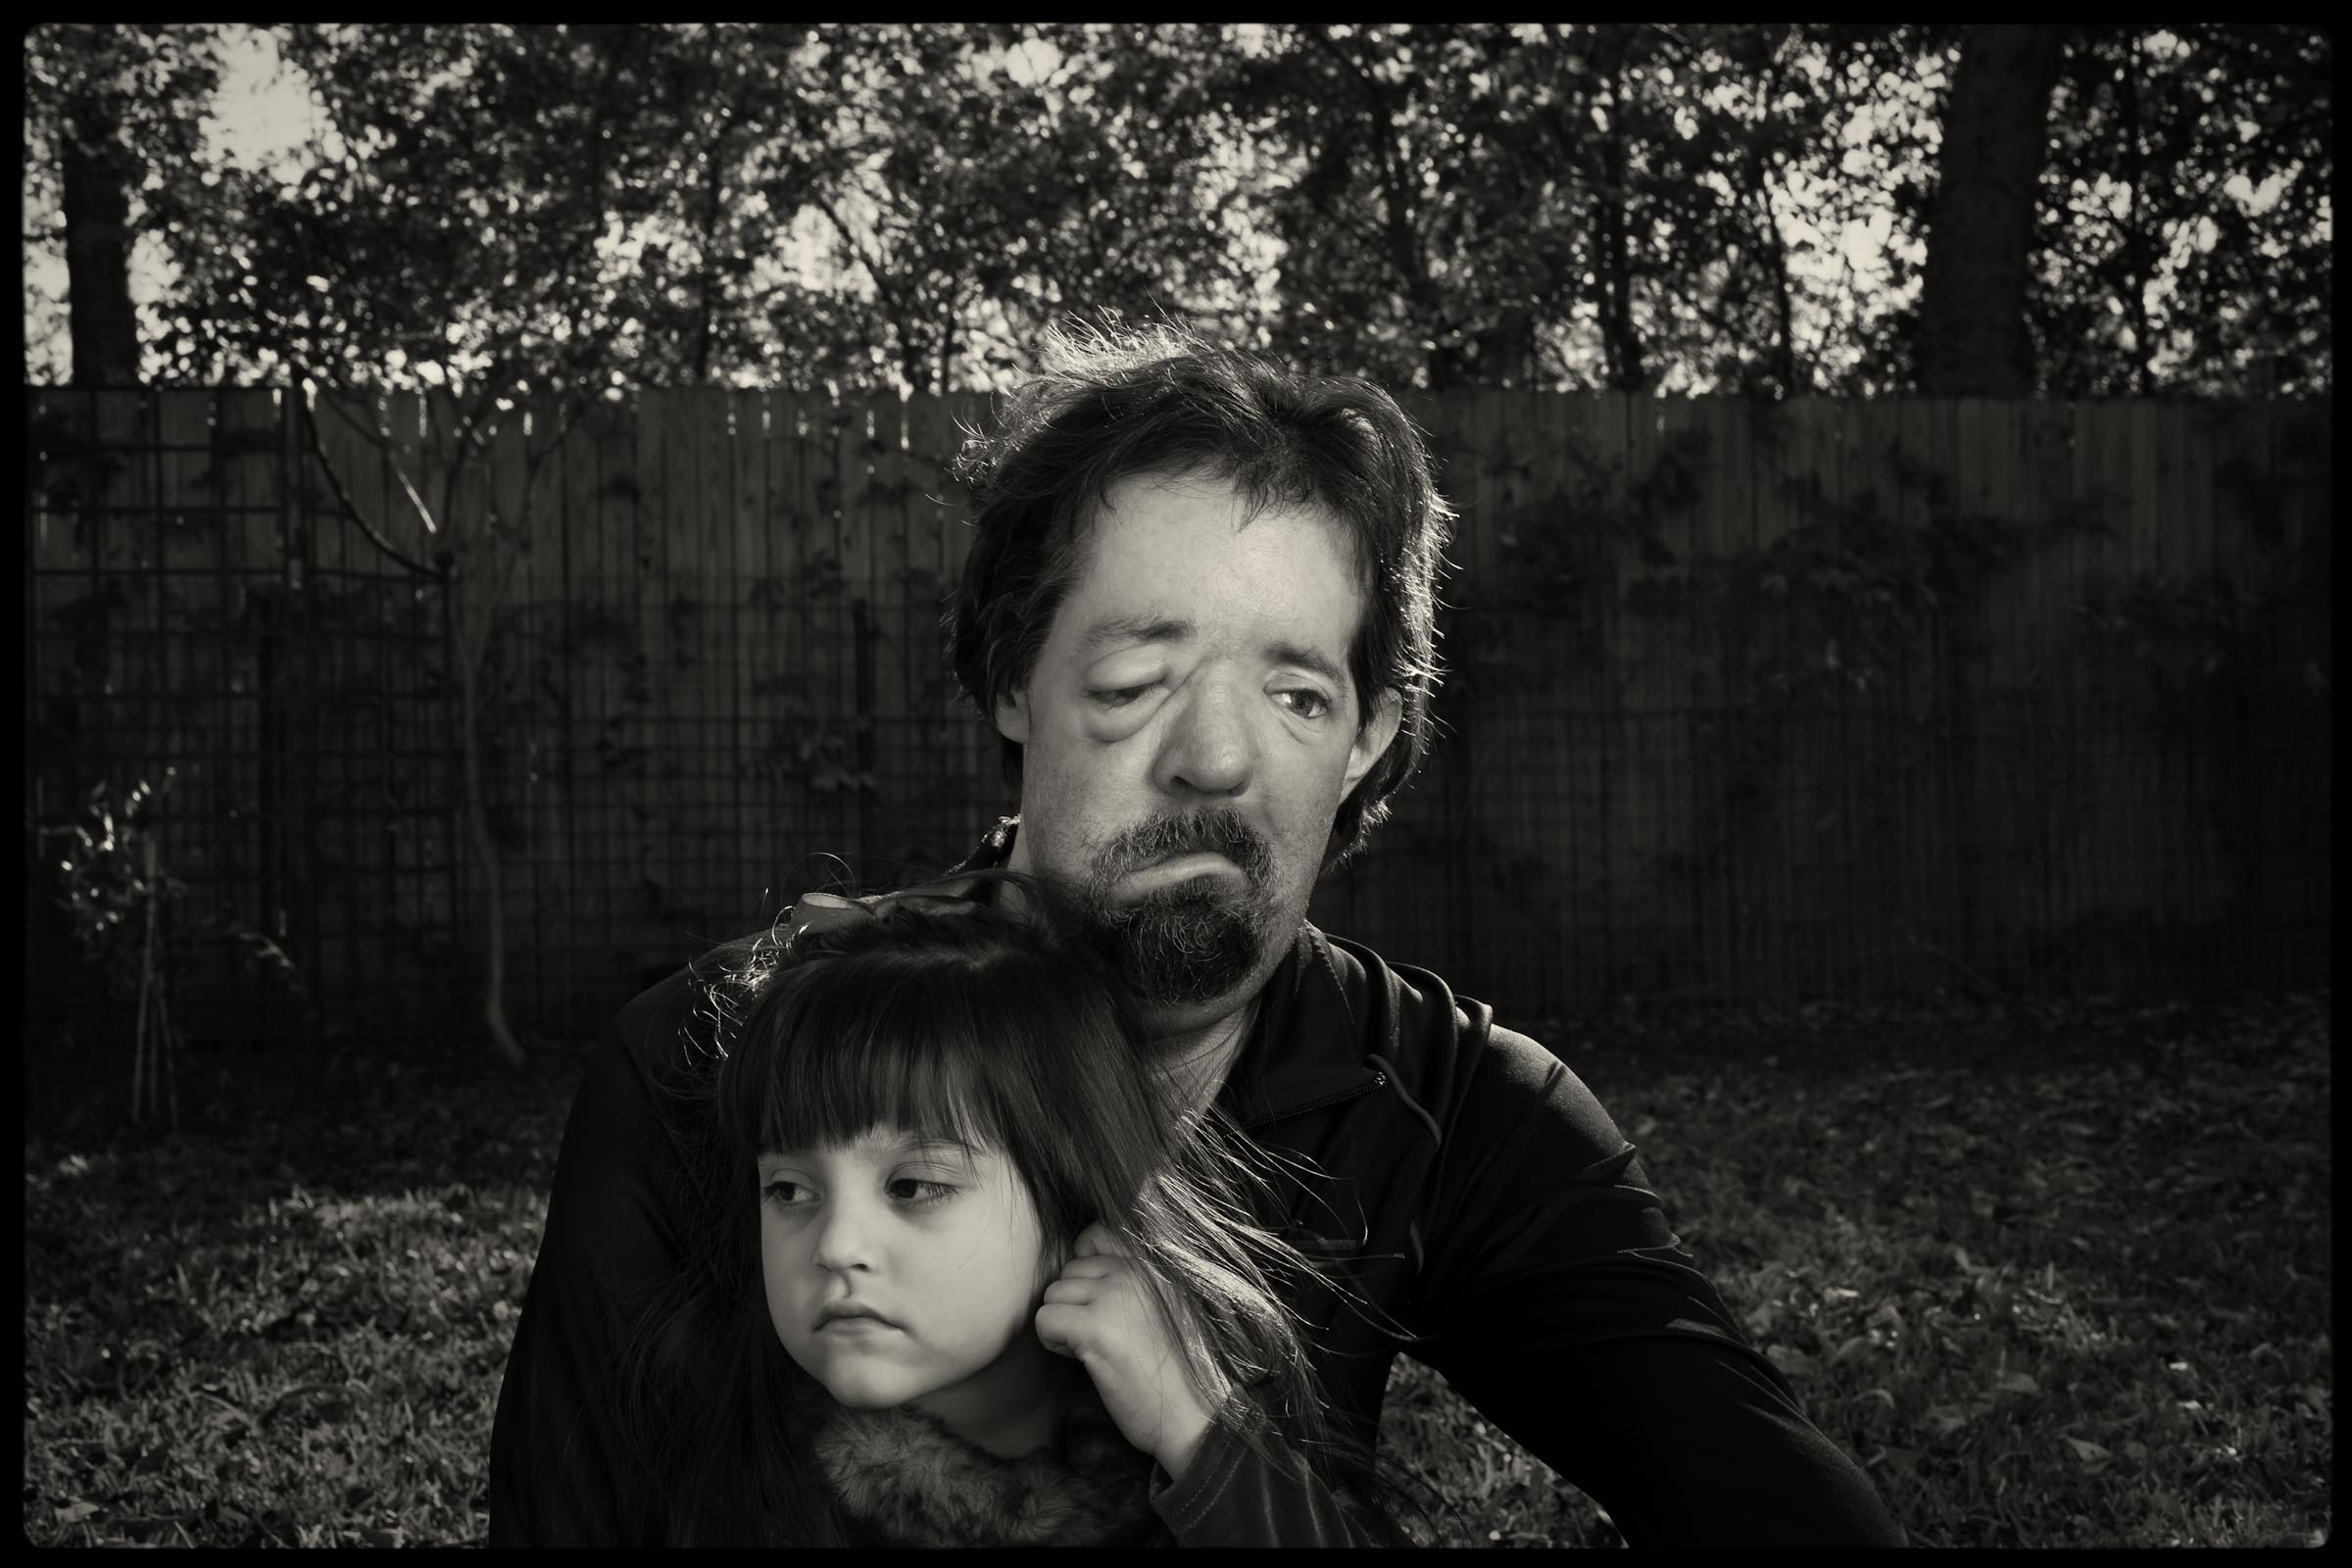 Dalla Wiens, recipient of first successful face transplant, with his daughter - New Yorker Magazine